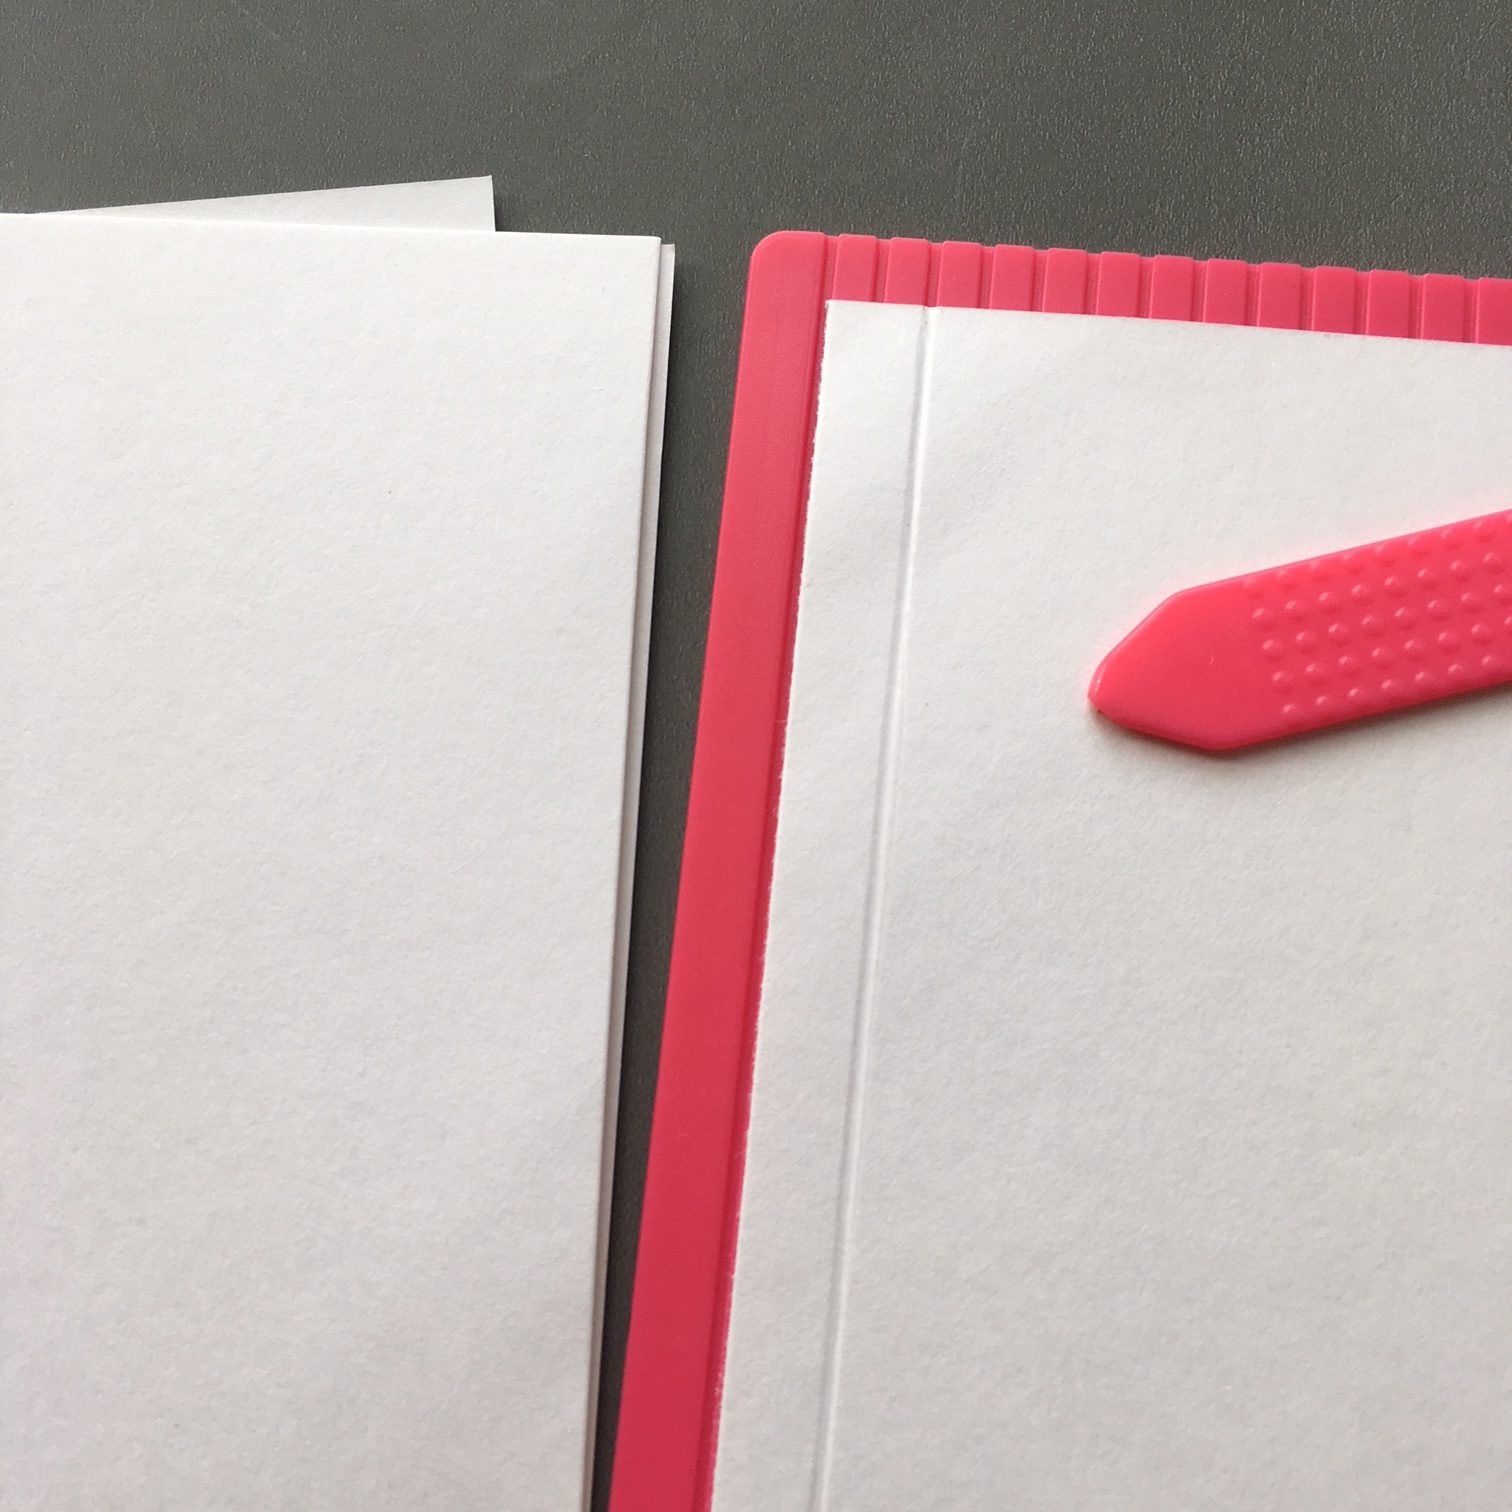 Creasing 1-2 cm from the edge will help you fold the paper pieces